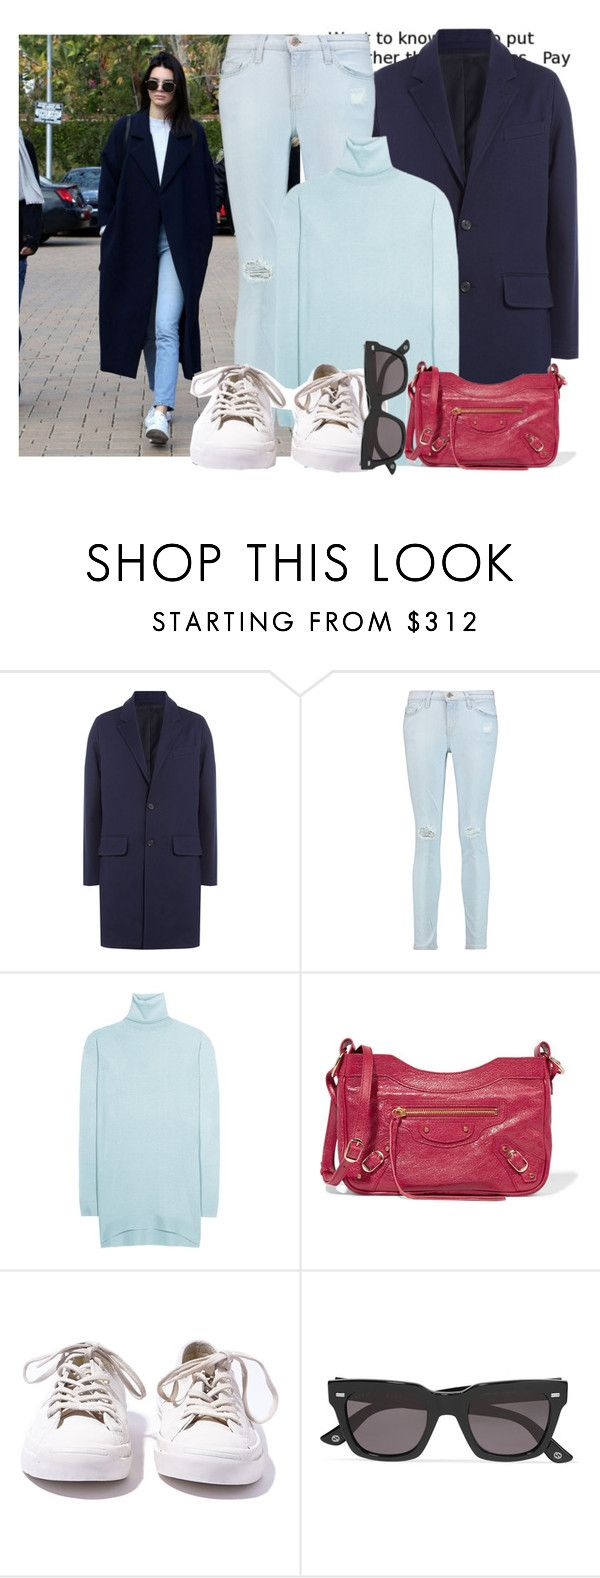 """""""Get the Look - Kendall Jenner..."""" by hattie4palmerstone ❤ liked on Polyvore featuring AMI, Current/Elliott, Balenciaga, Converse, Gucci, converse, gucci, currentelliott and Ami"""